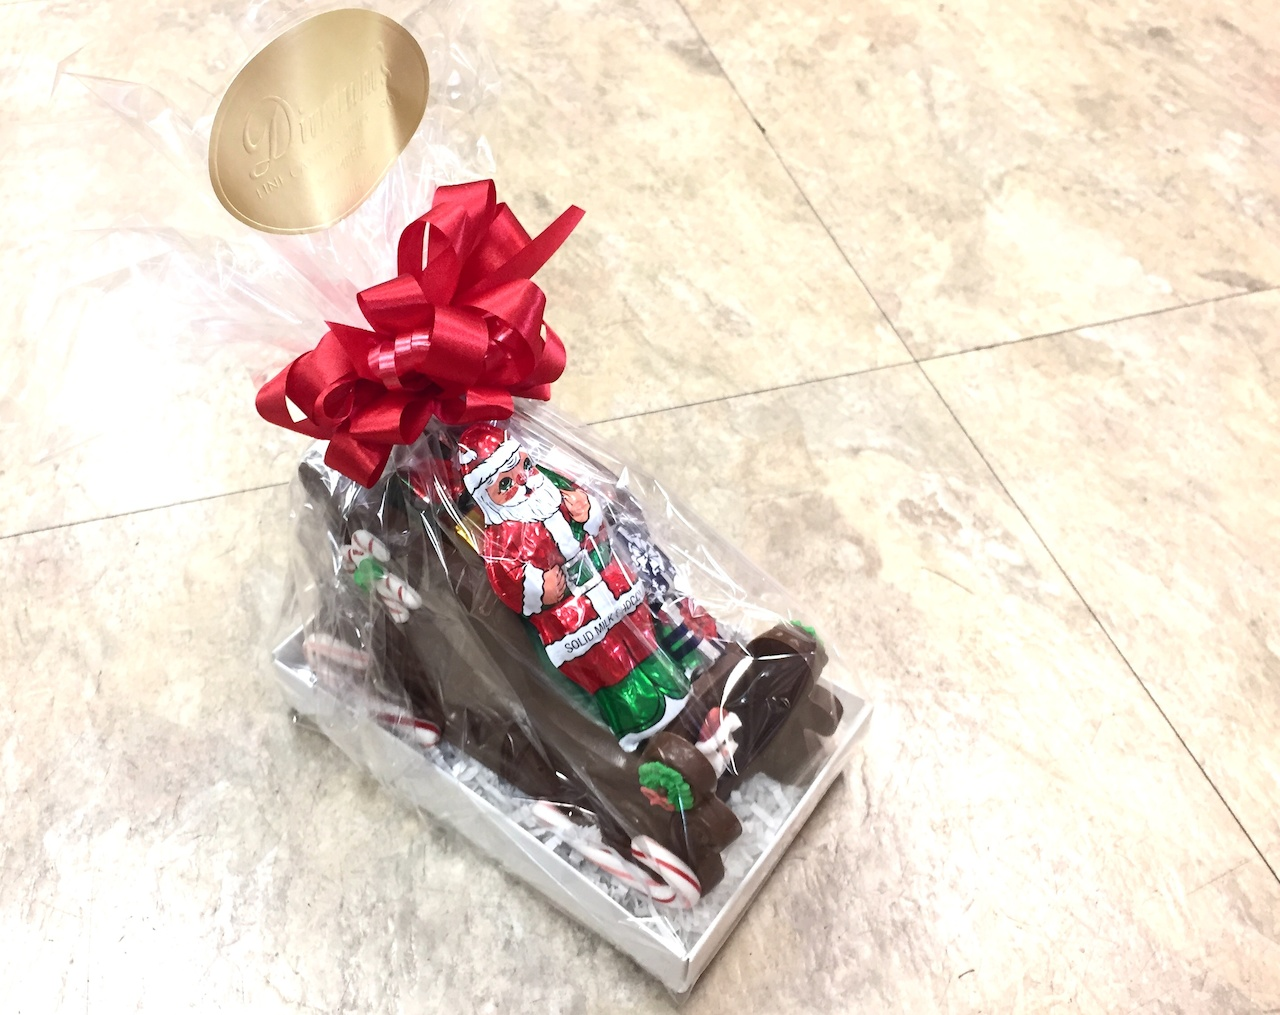 Chocolate sleigh, $25 from Dinstuhl's